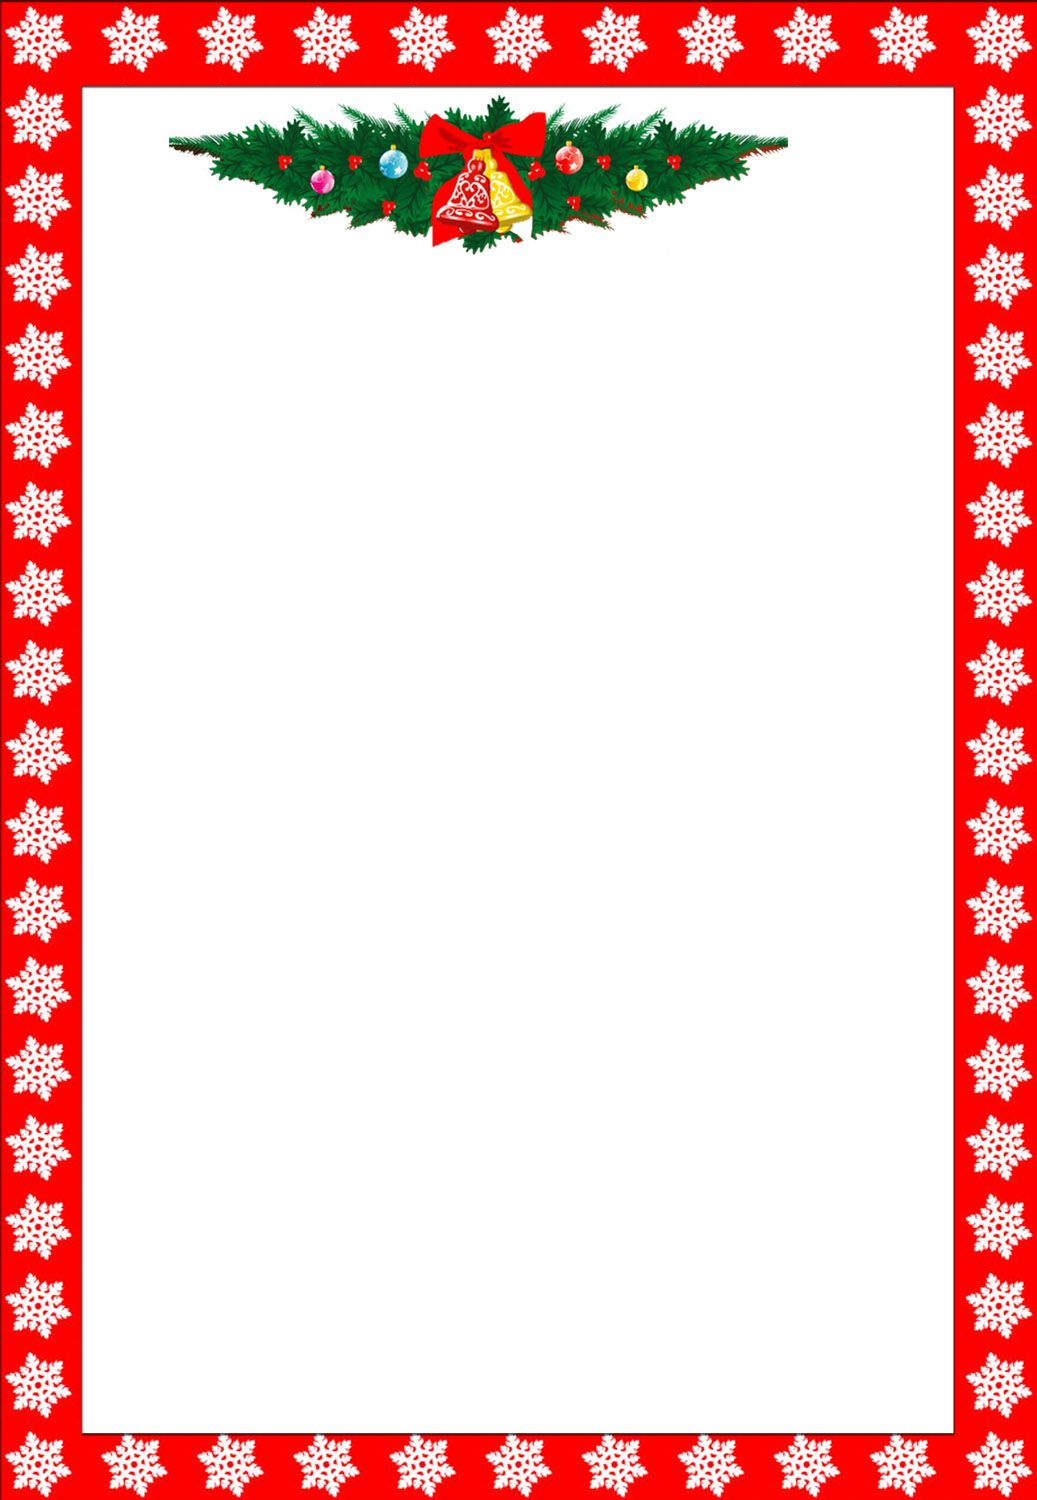 Christmas Letter Border Template - Christmas Clip Art Borders